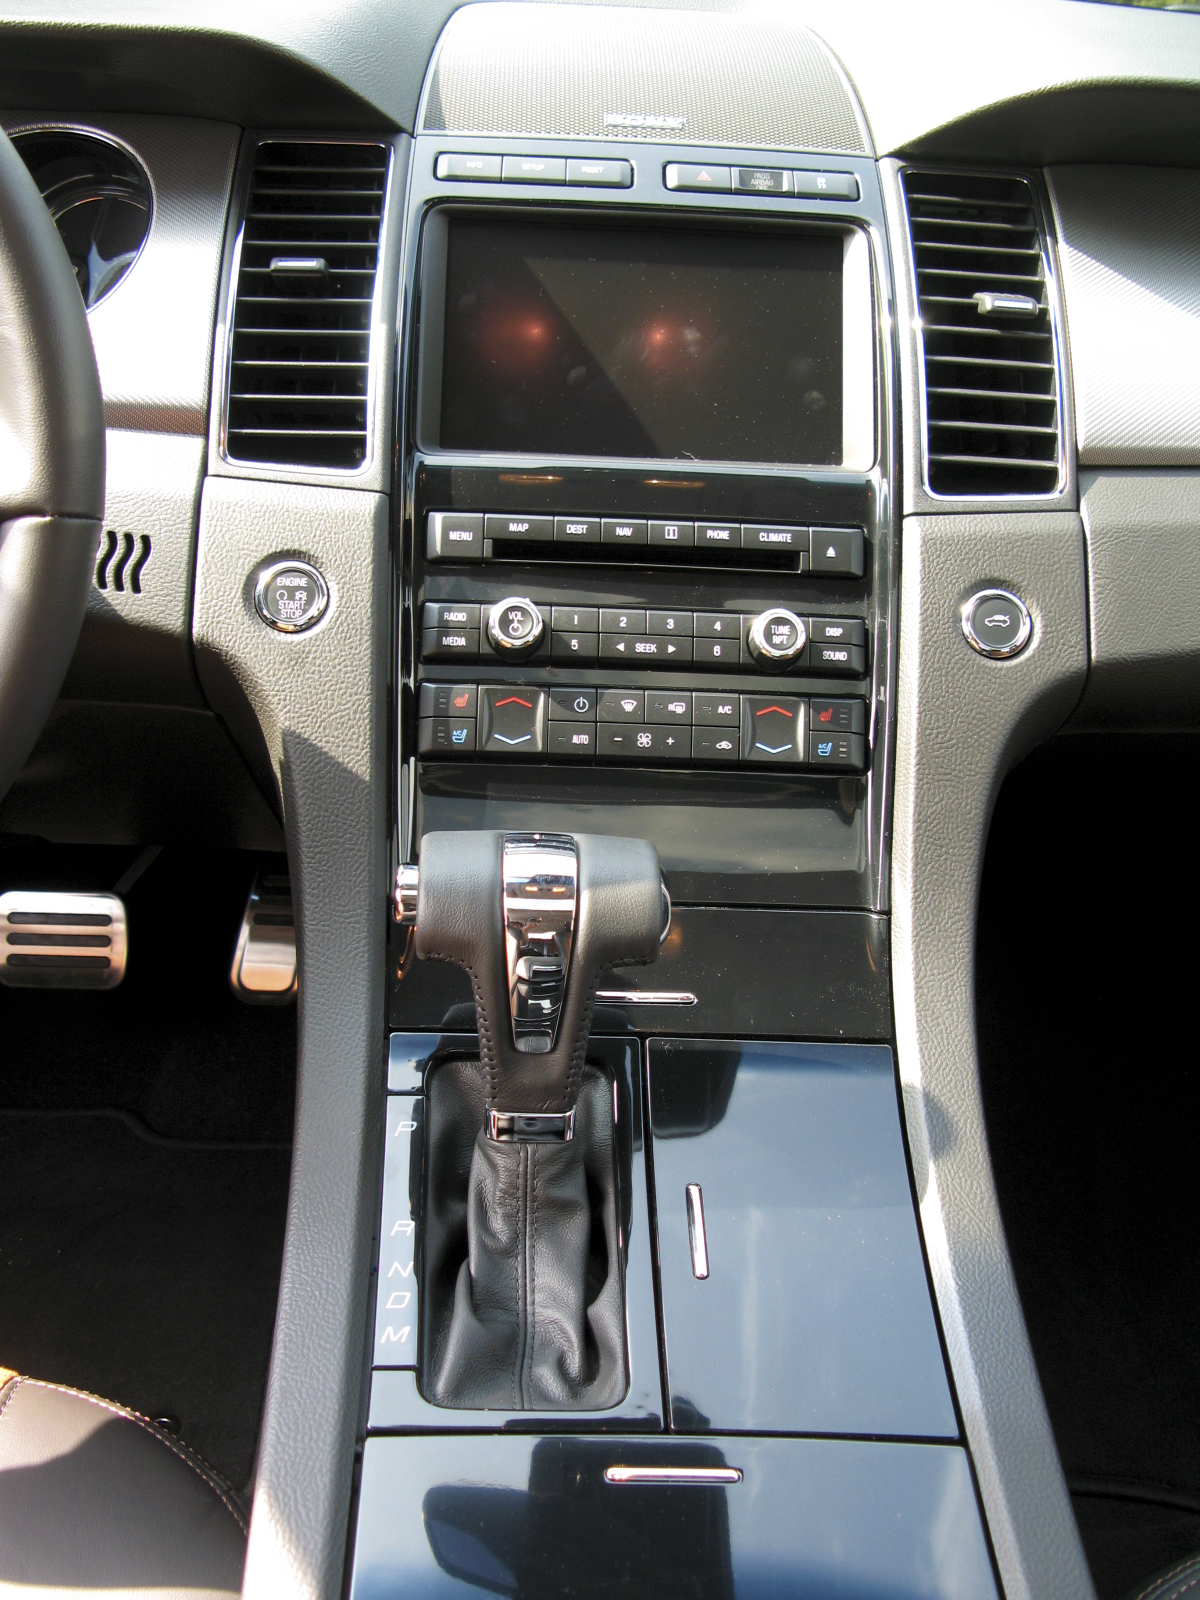 2010 Ford Taurus SHO | Top Speed